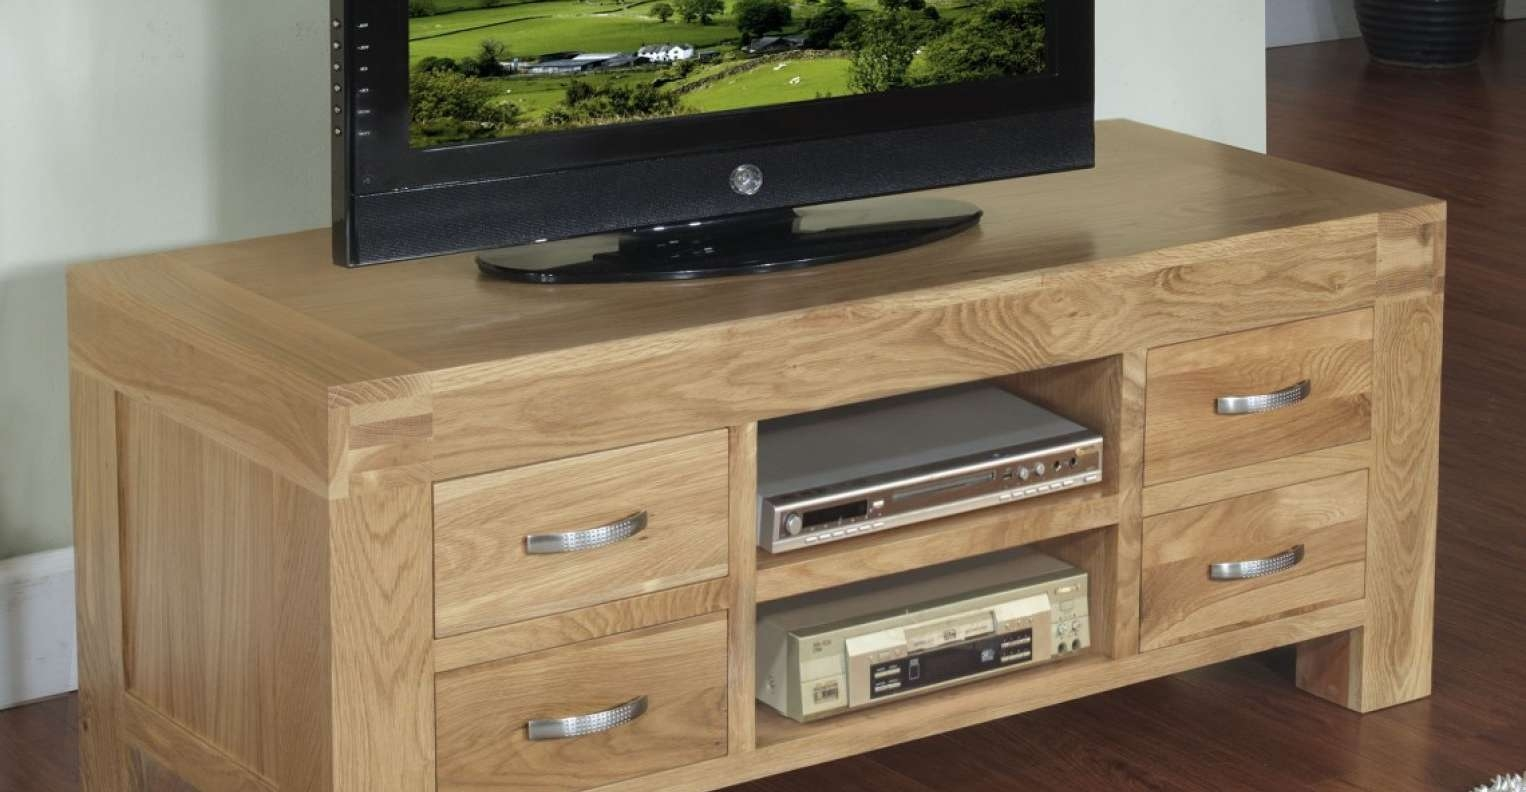 Tv : Barham Oak Widescreen Tv Stand Wonderful Widescreen Tv Within Widescreen Tv Cabinets (View 19 of 20)